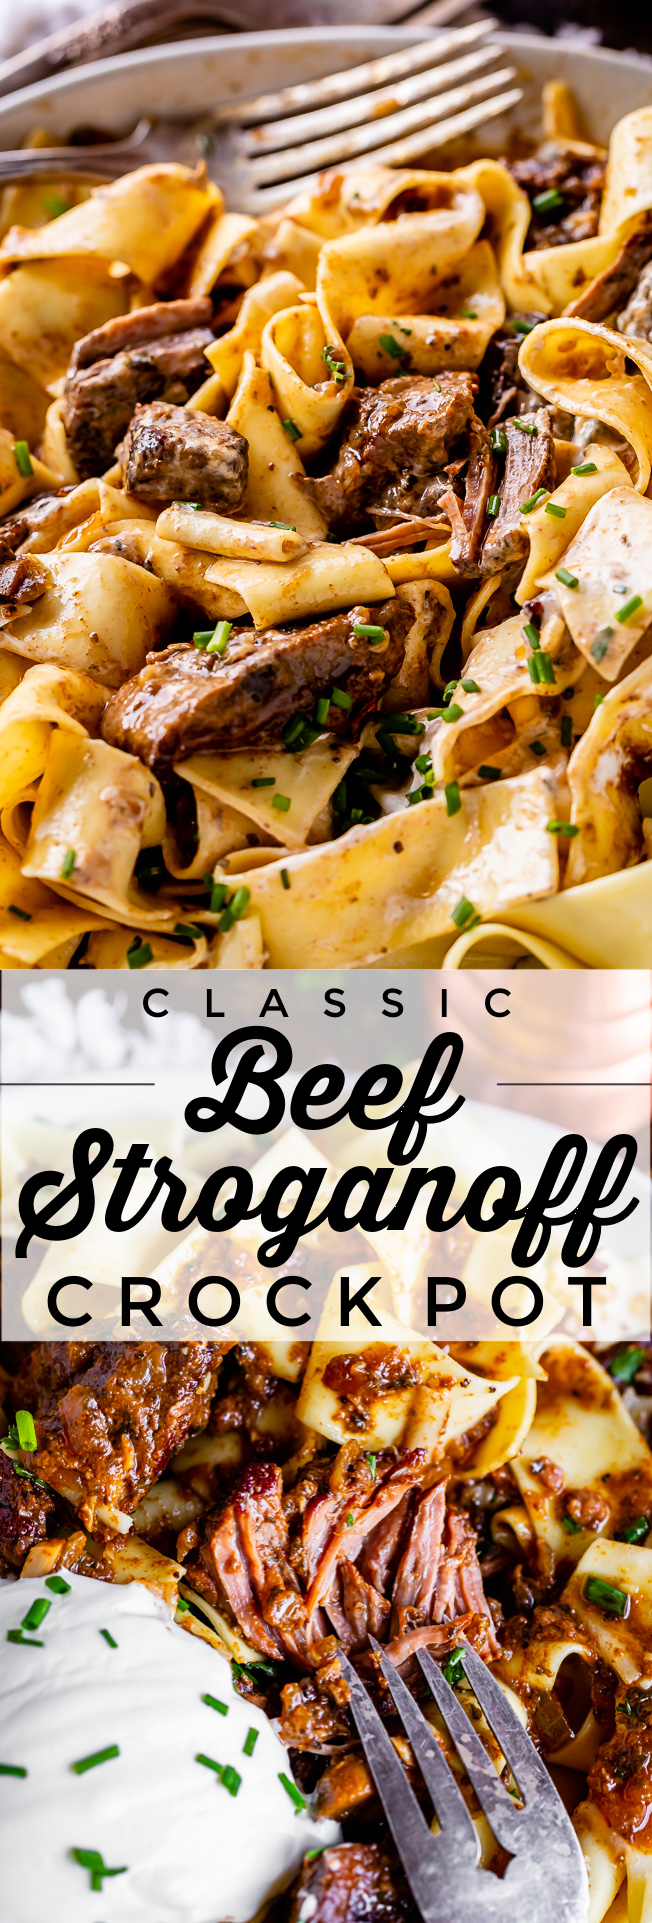 Classic Beef Stroganoff Recipe Crock Pot From The Food Charlatan This Is Not Your Average Beef Stro In 2020 Classic Beef Stroganoff Recipe Easy Stew Beef Stroganoff